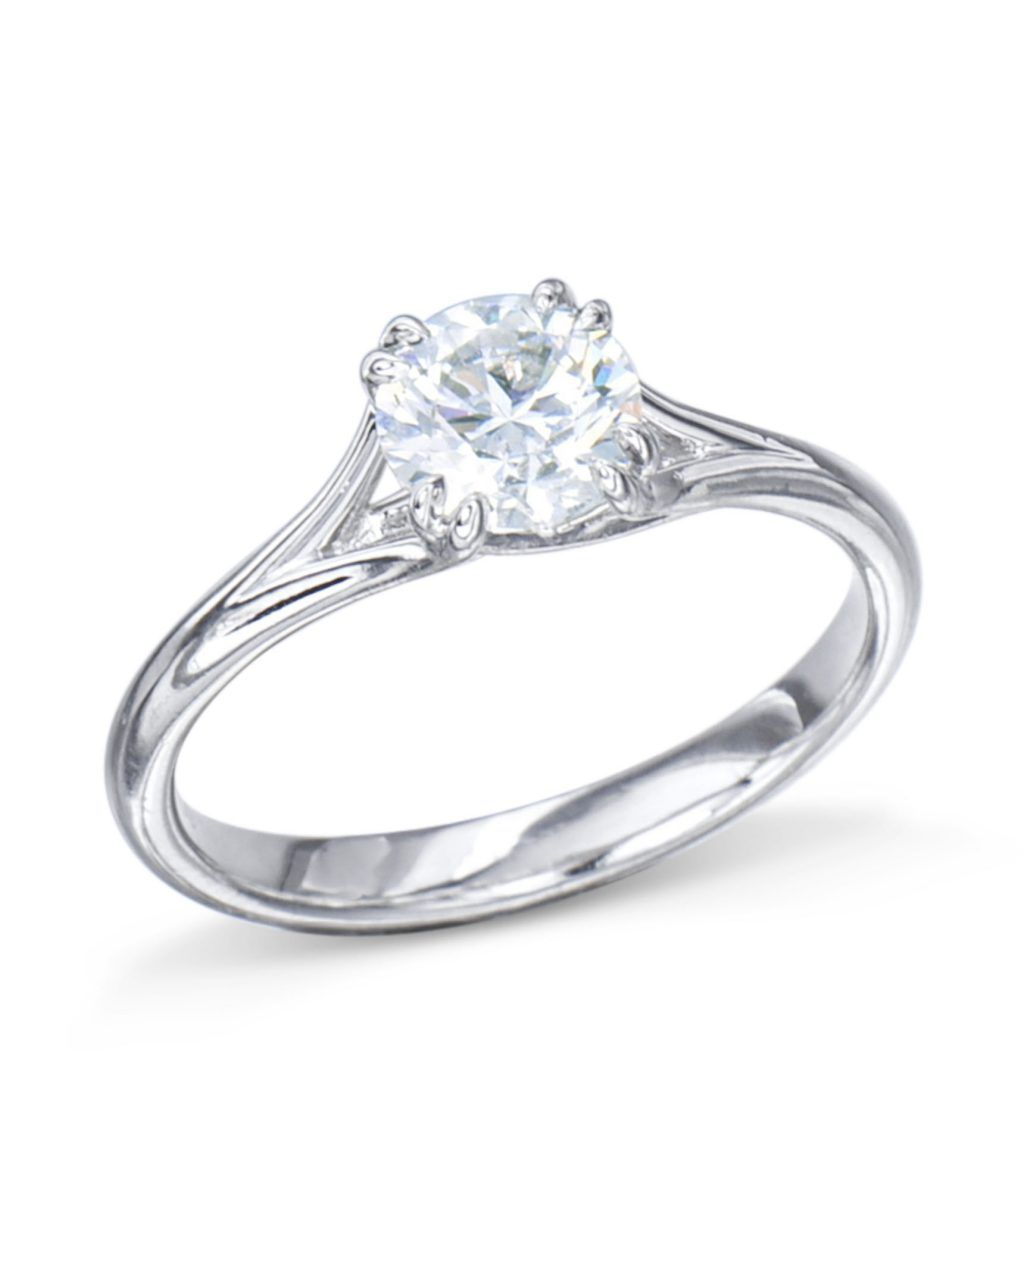 ba8ee78be Our platinum Signature Solitaire diamond engagement ring is a Turgeon Raine  exclusive.Hand-fabricated in precious platinum, this engagement ring is  hand ...